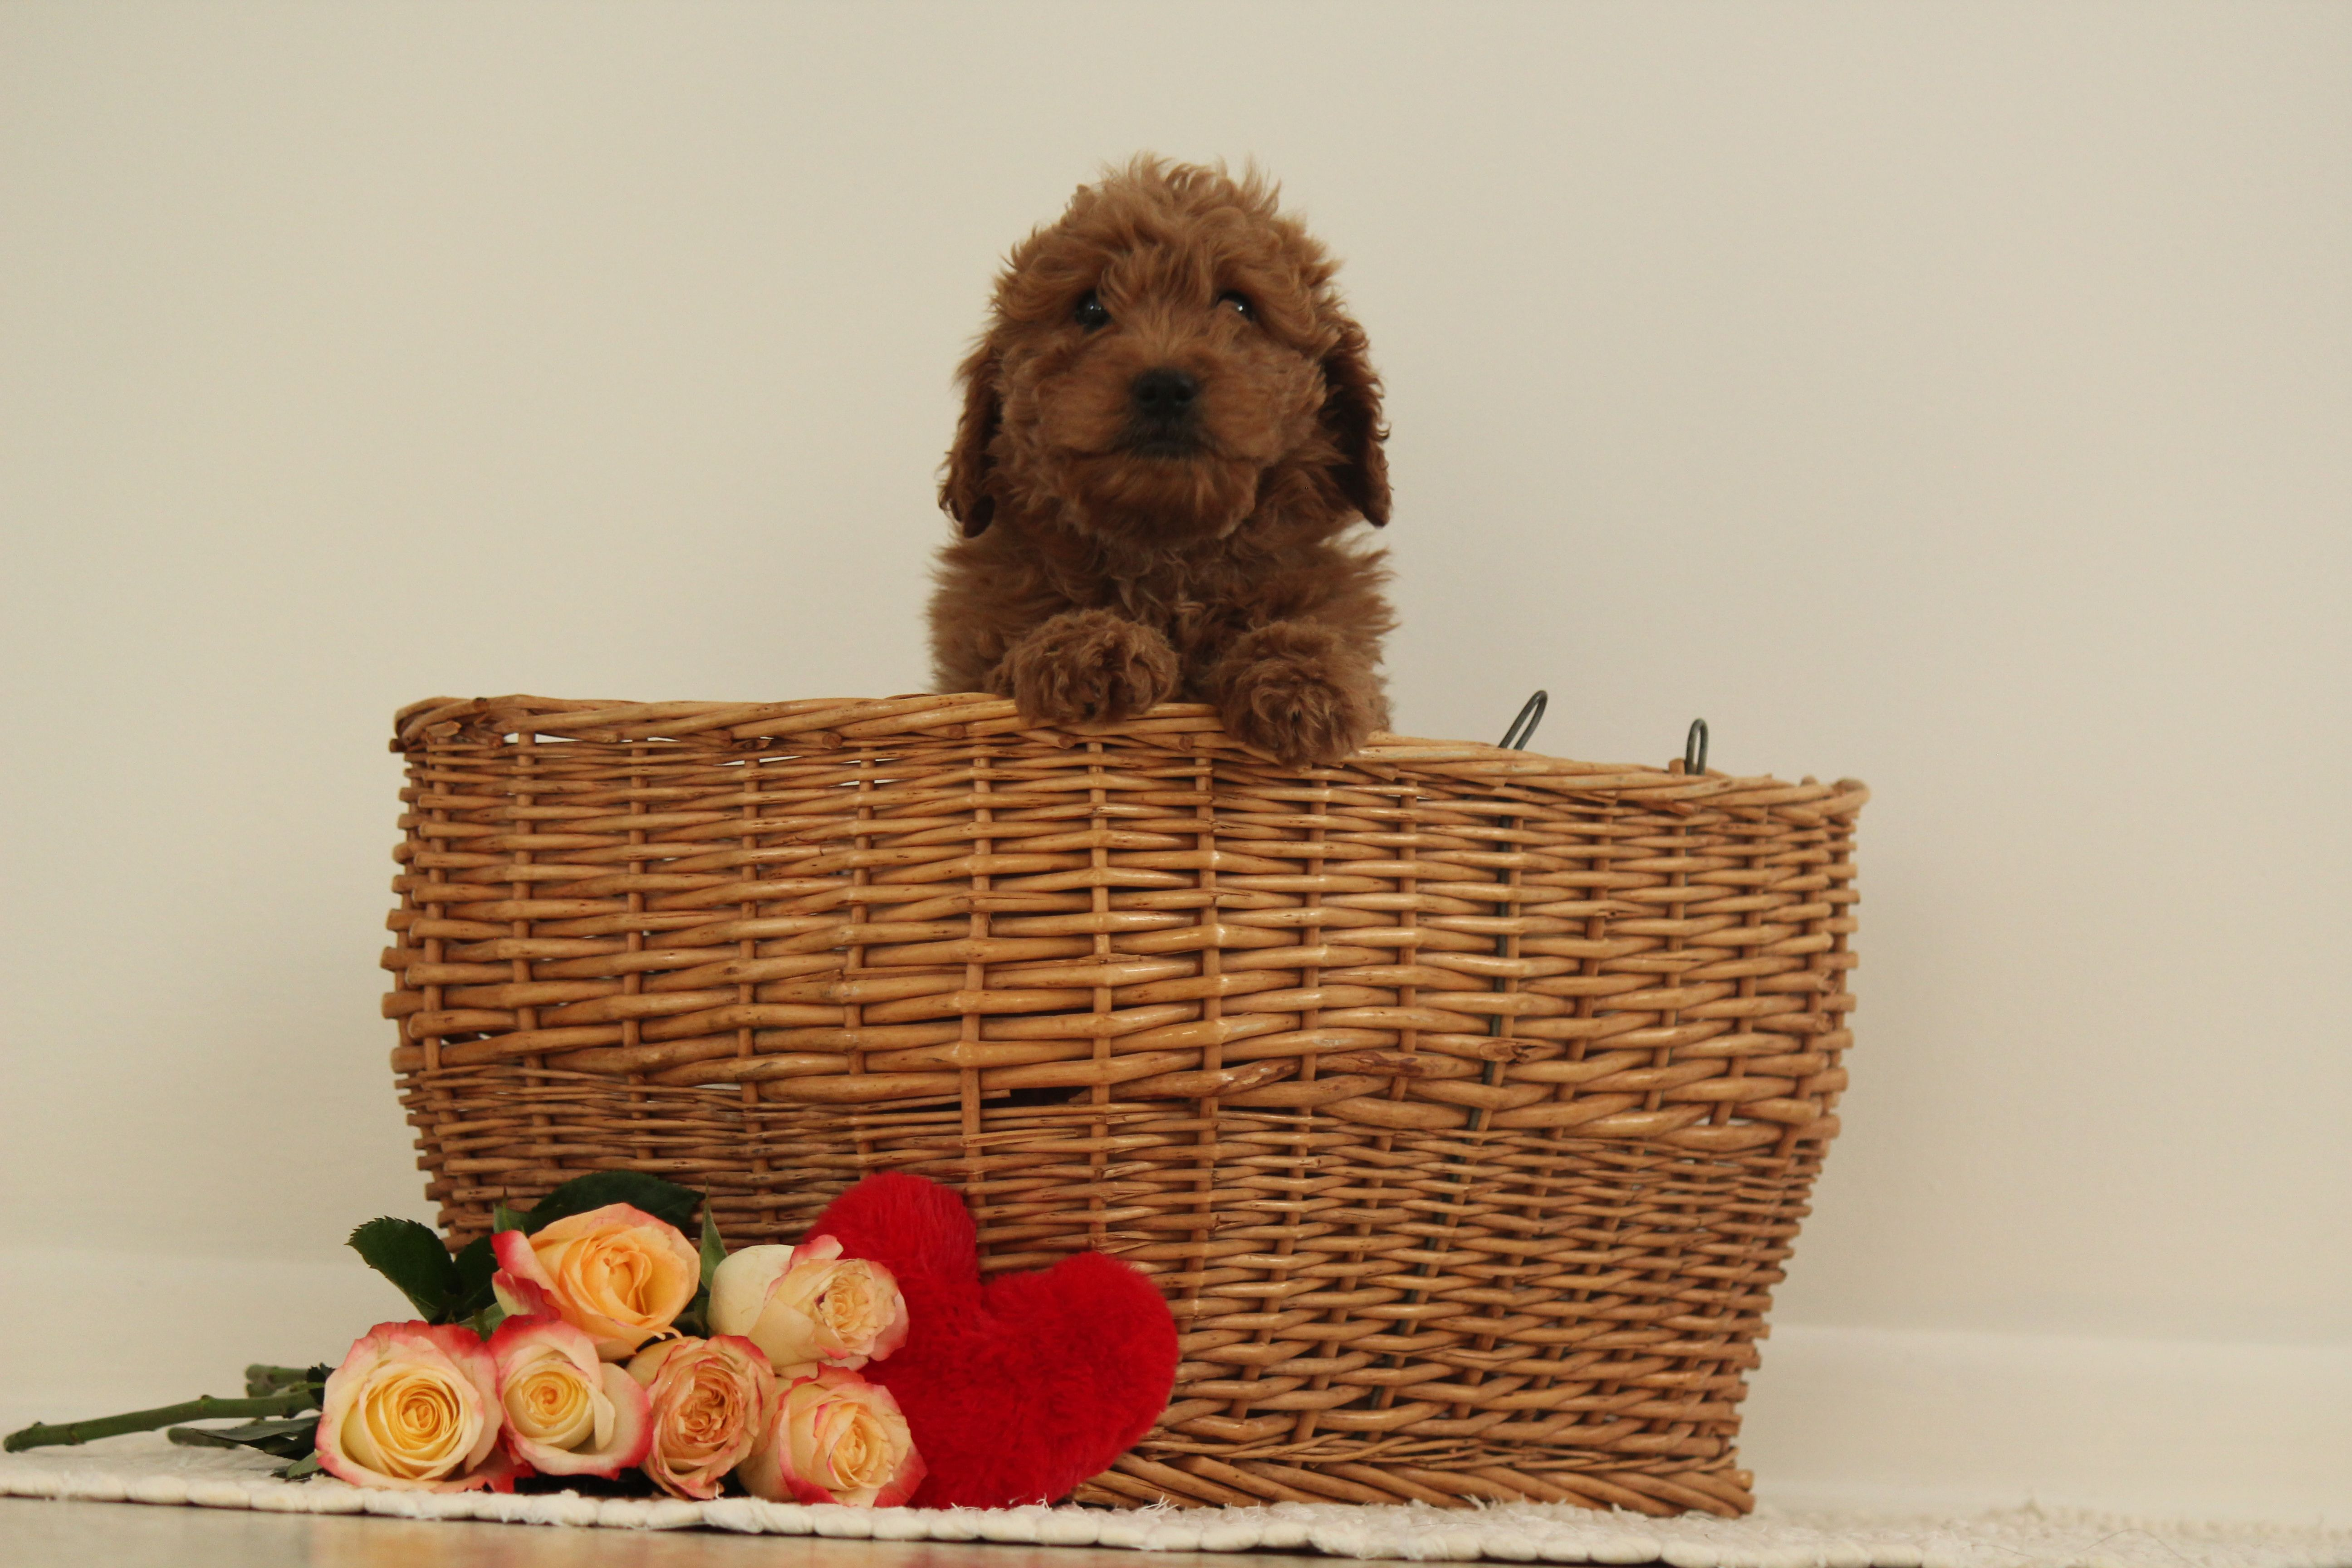 Greta F1b Miniature Goldendoodle Pup For Sale At Wakarusa Indiana In 2020 Puppies For Sale Puppy Finder Goldendoodle